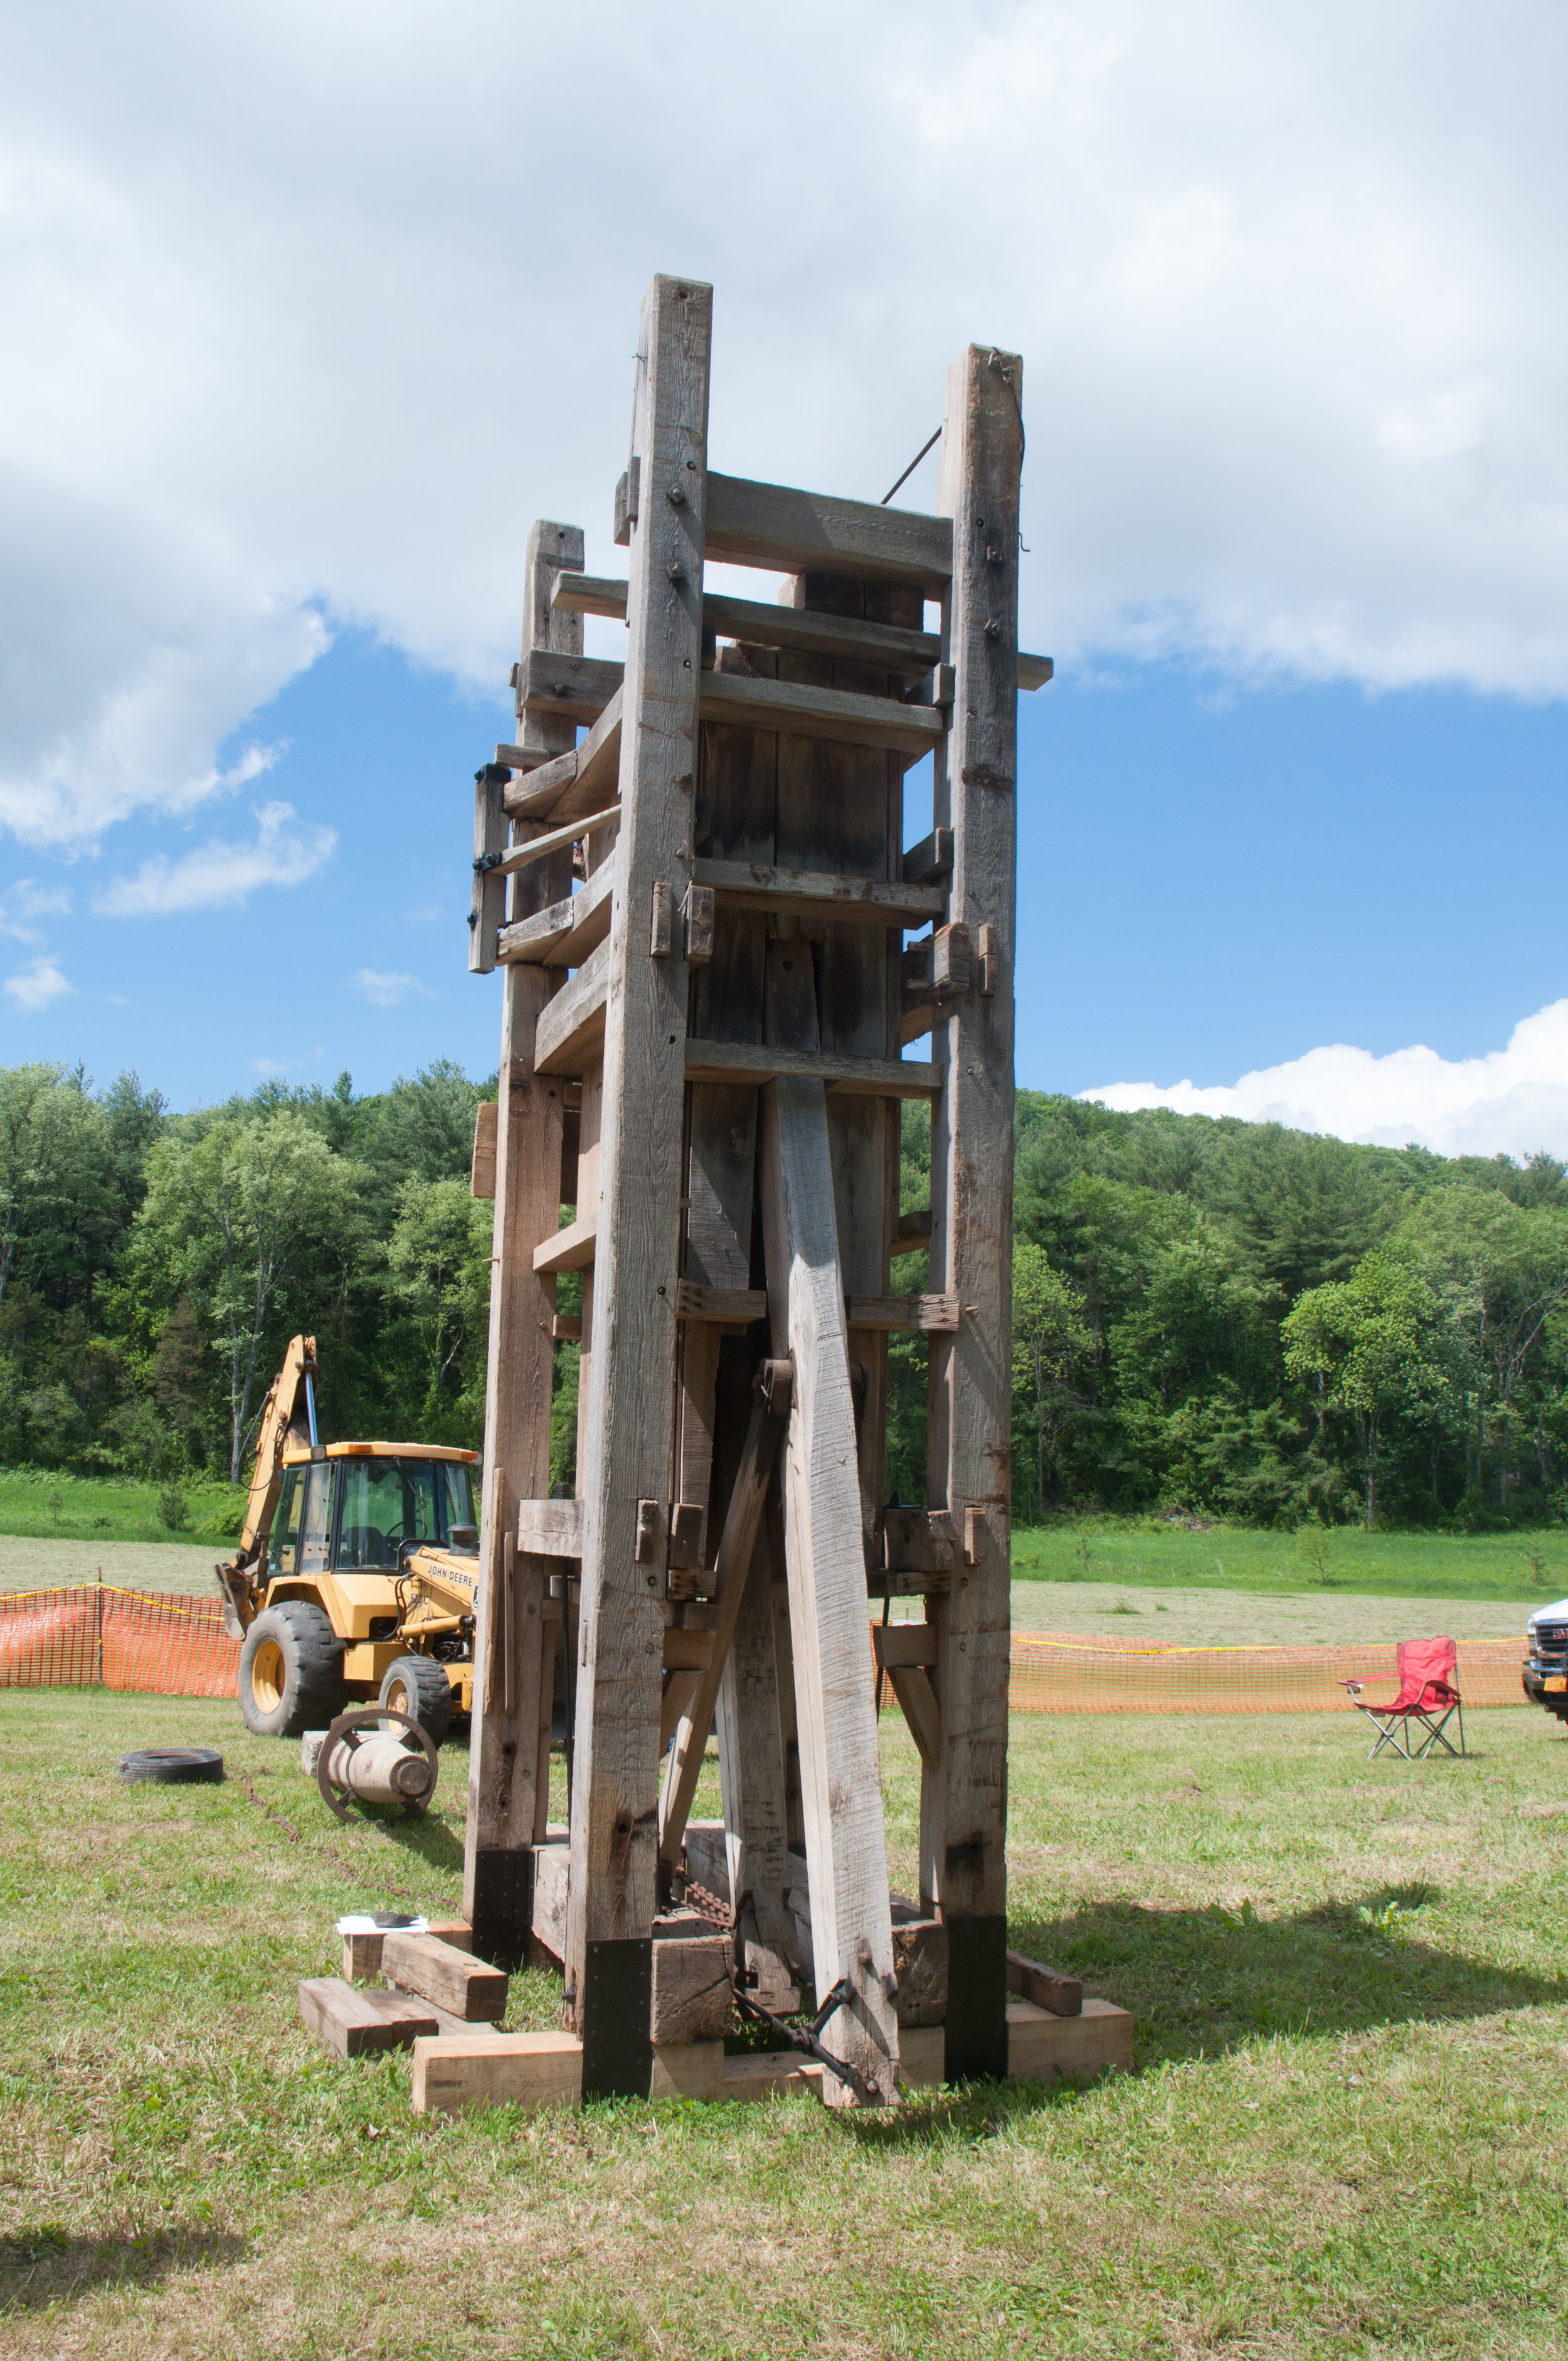 The Greene County Historical Society's 19th Century Hay Press. Hay presses like this created bales suitable for shipping hay down the river in bulk.